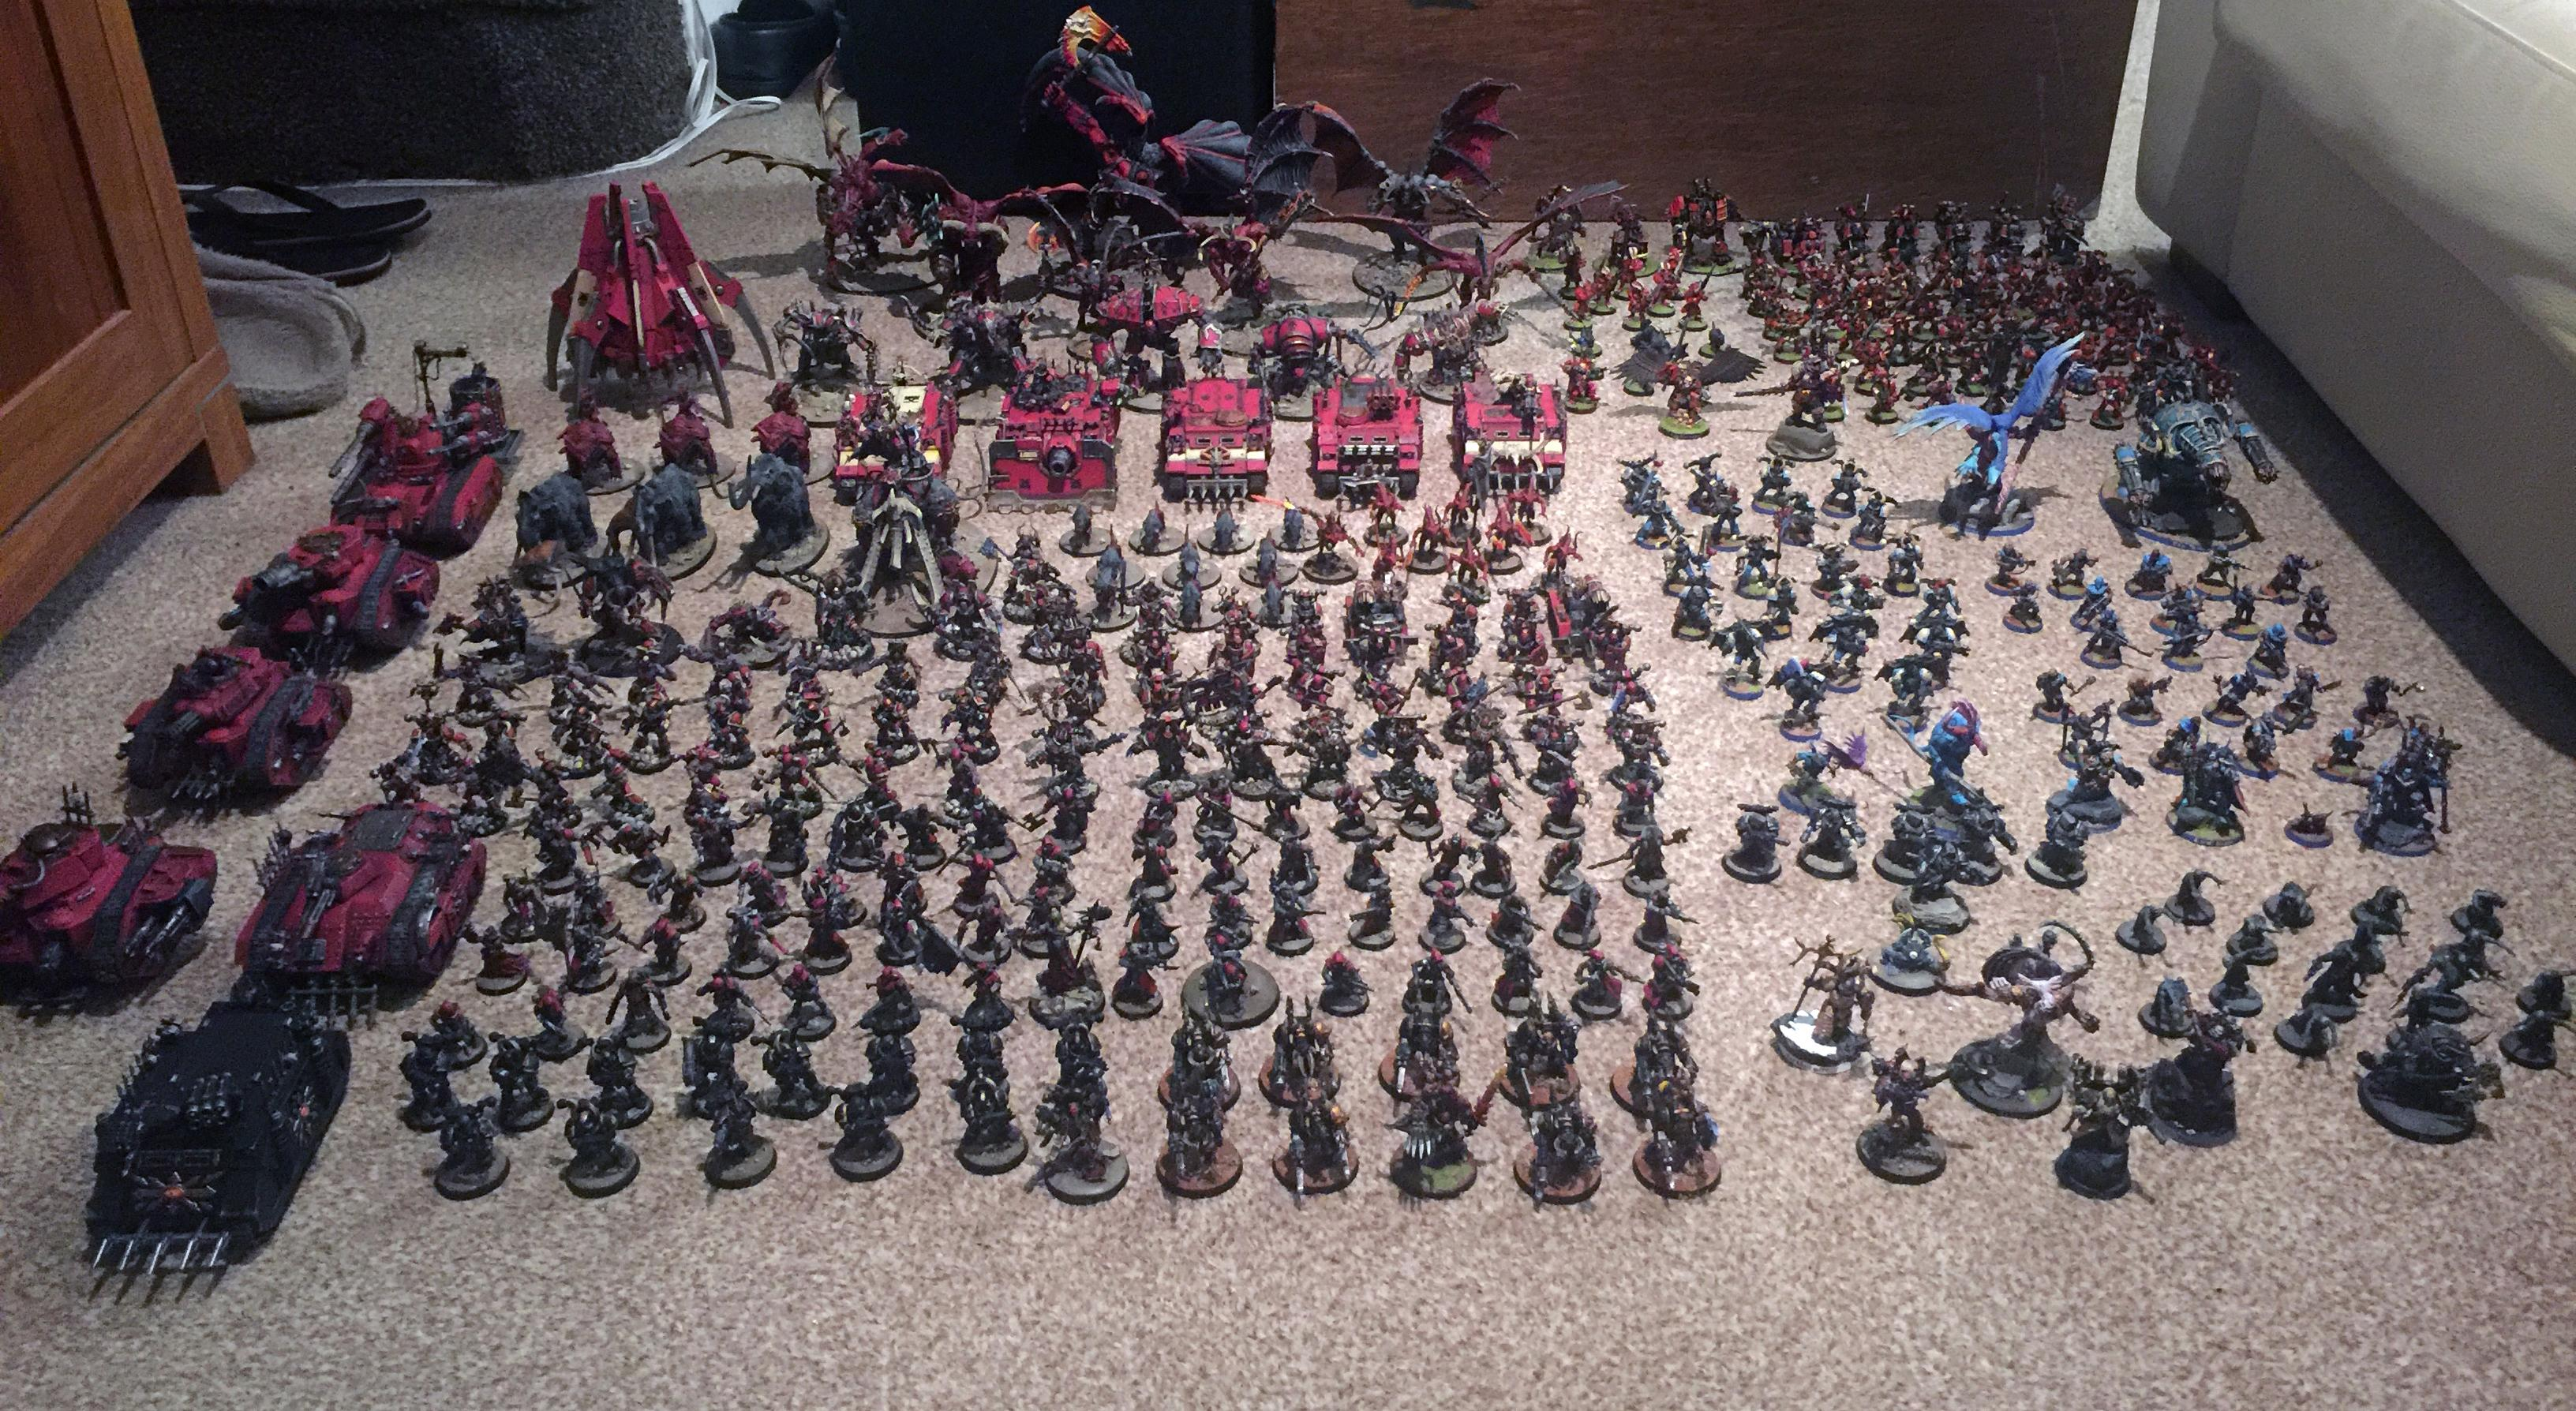 Abaddon The Despoiler, Apocalypse, Army, Chaos Daemons, Chaos Space Marines, Chaos Undivided, Khorne, Lost And The Damned, Renegades, Tzeentch, Warhammer 40,000